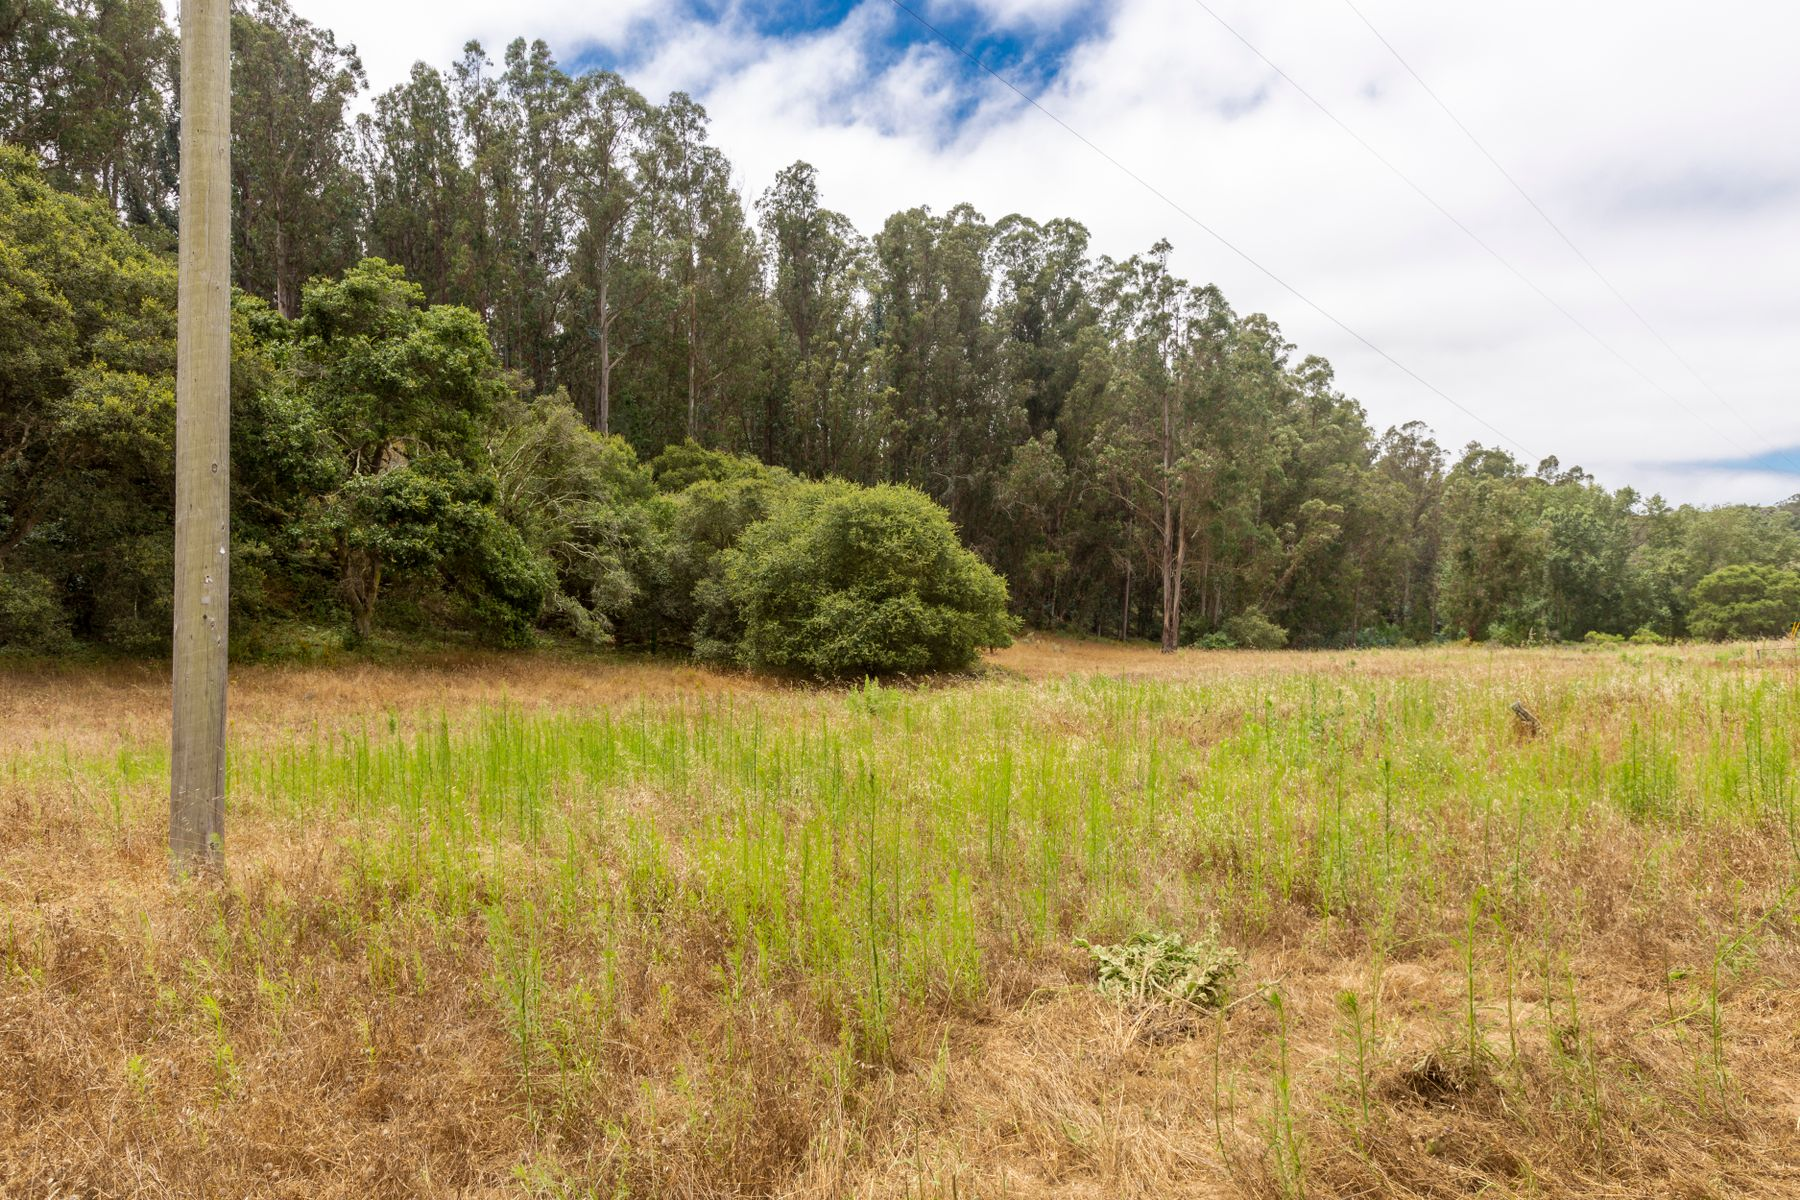 Land for Sale at 51.67 Acres Waiting for Dream Home! 0 Desmond Road Prunedale, California 93907 United States